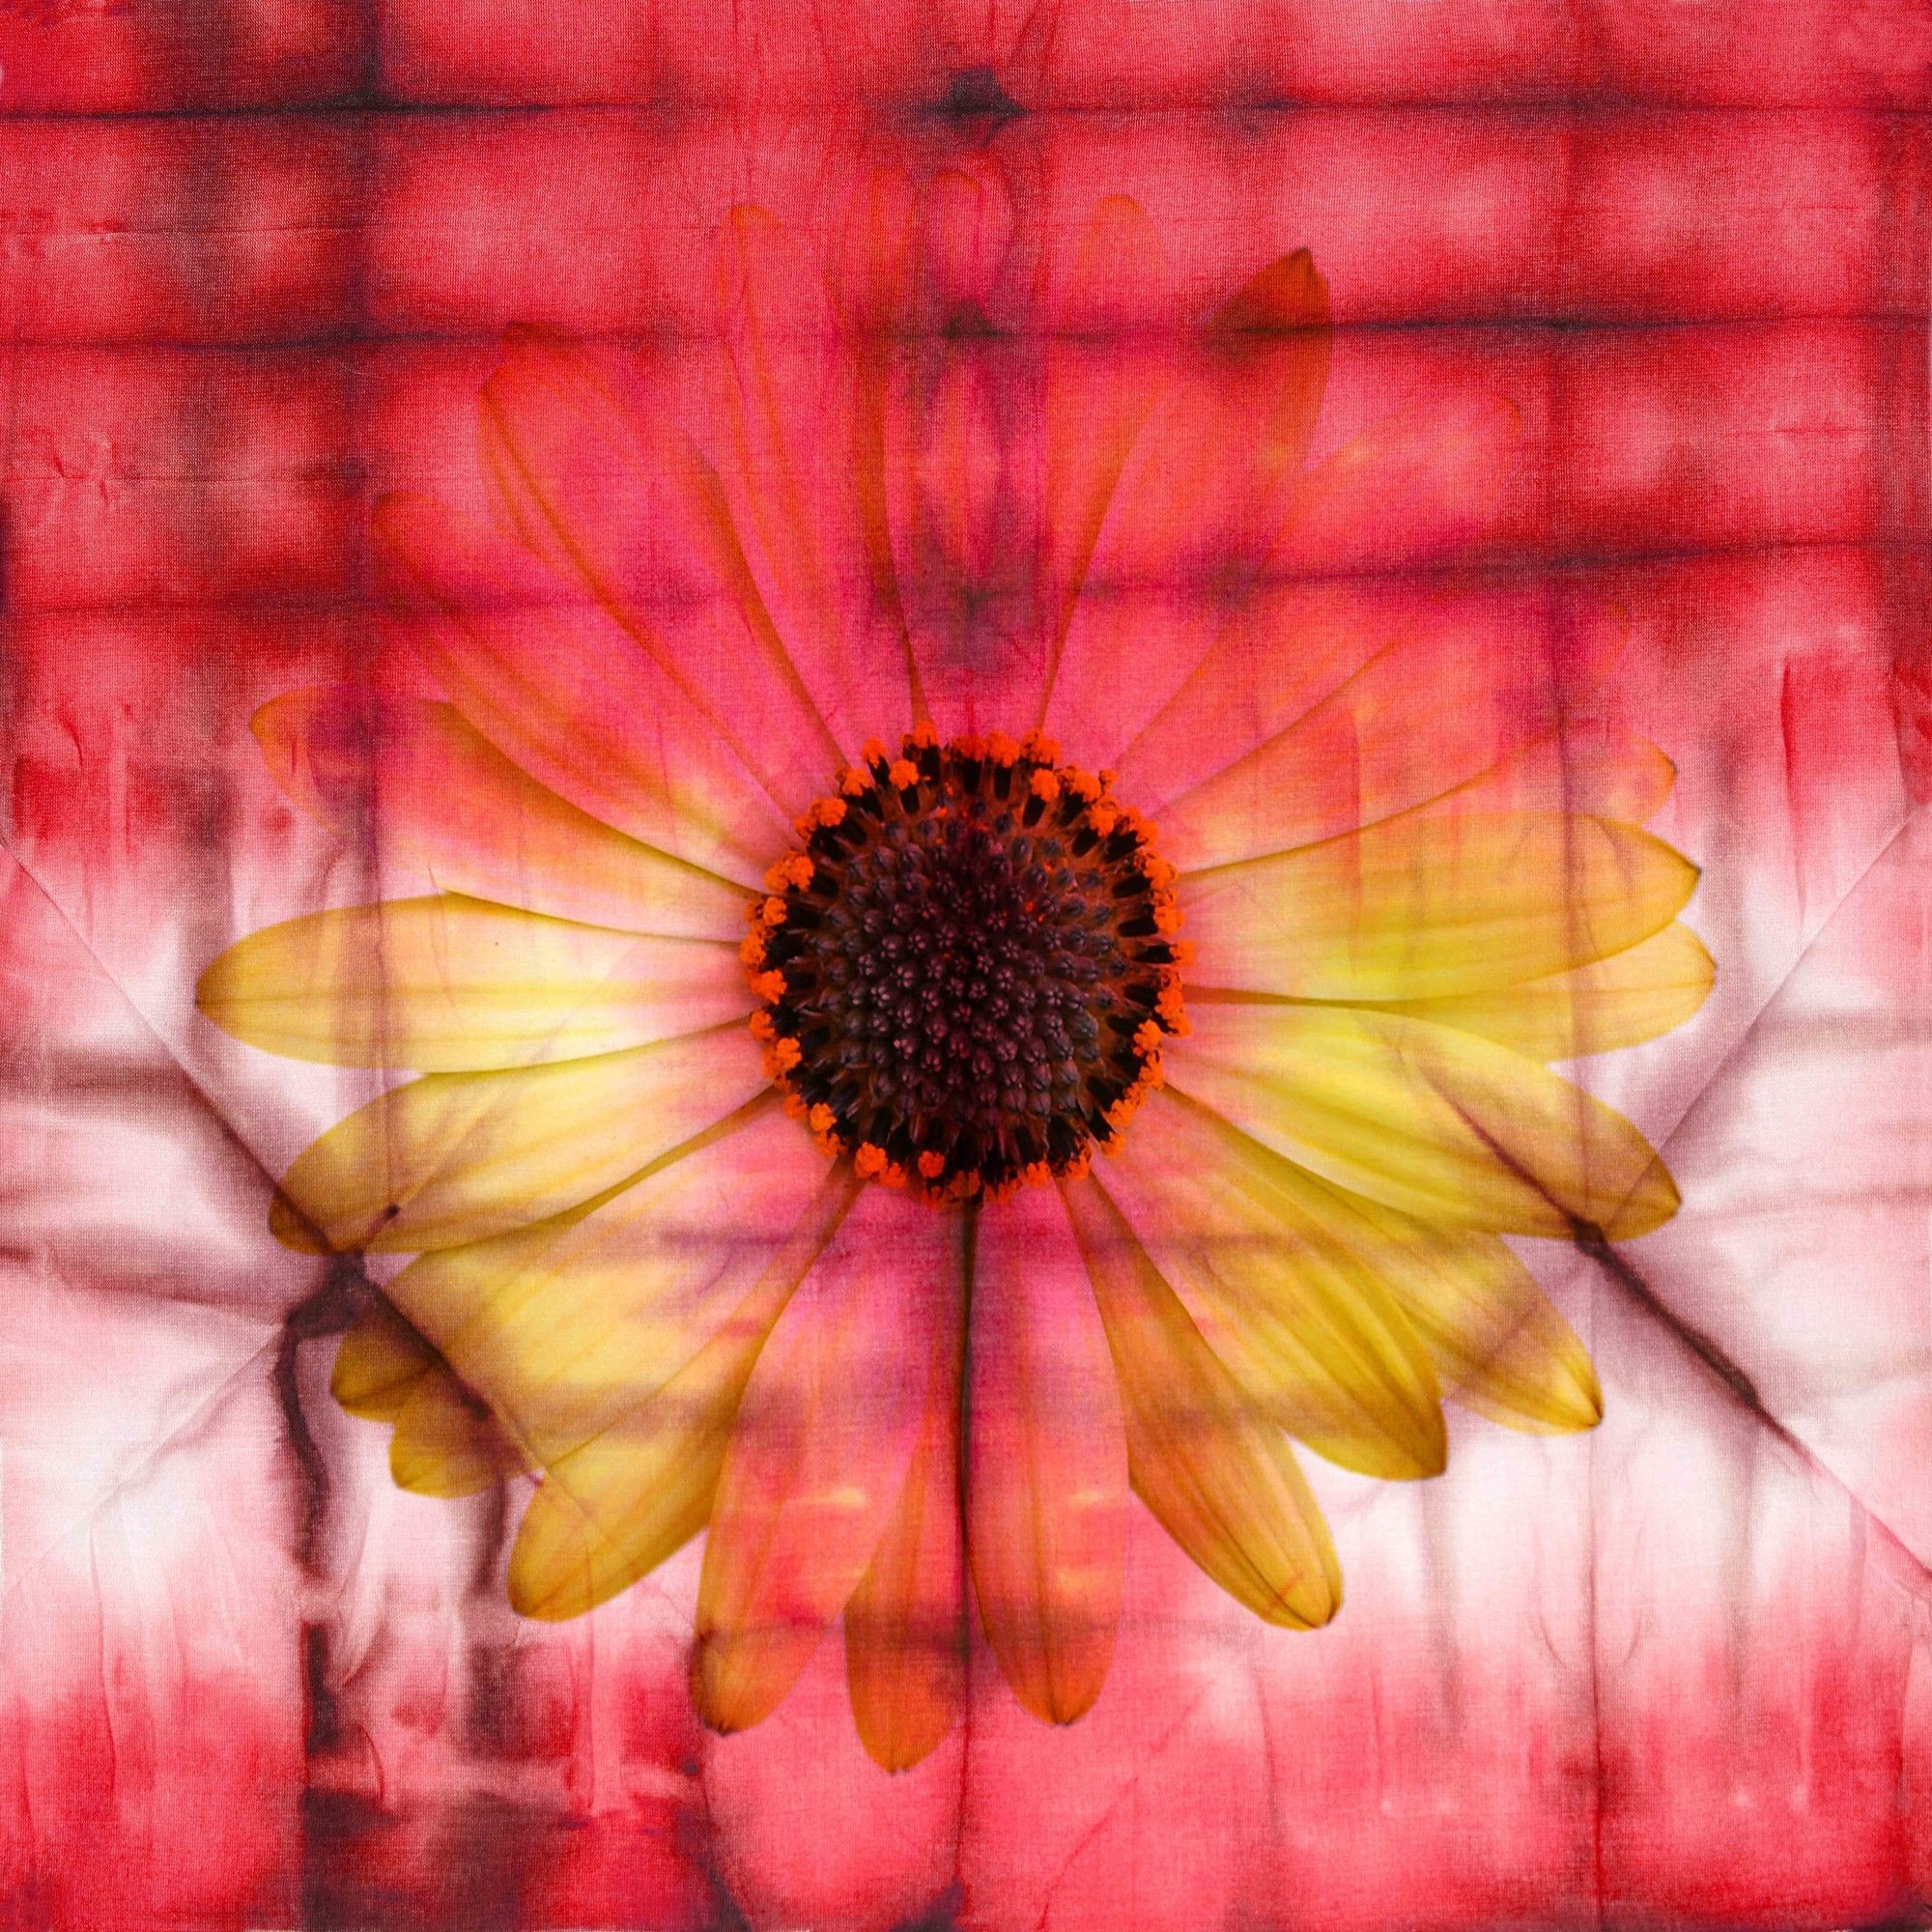 Glowing Sunflower Graphic Art on Premium Wrapped Canvas